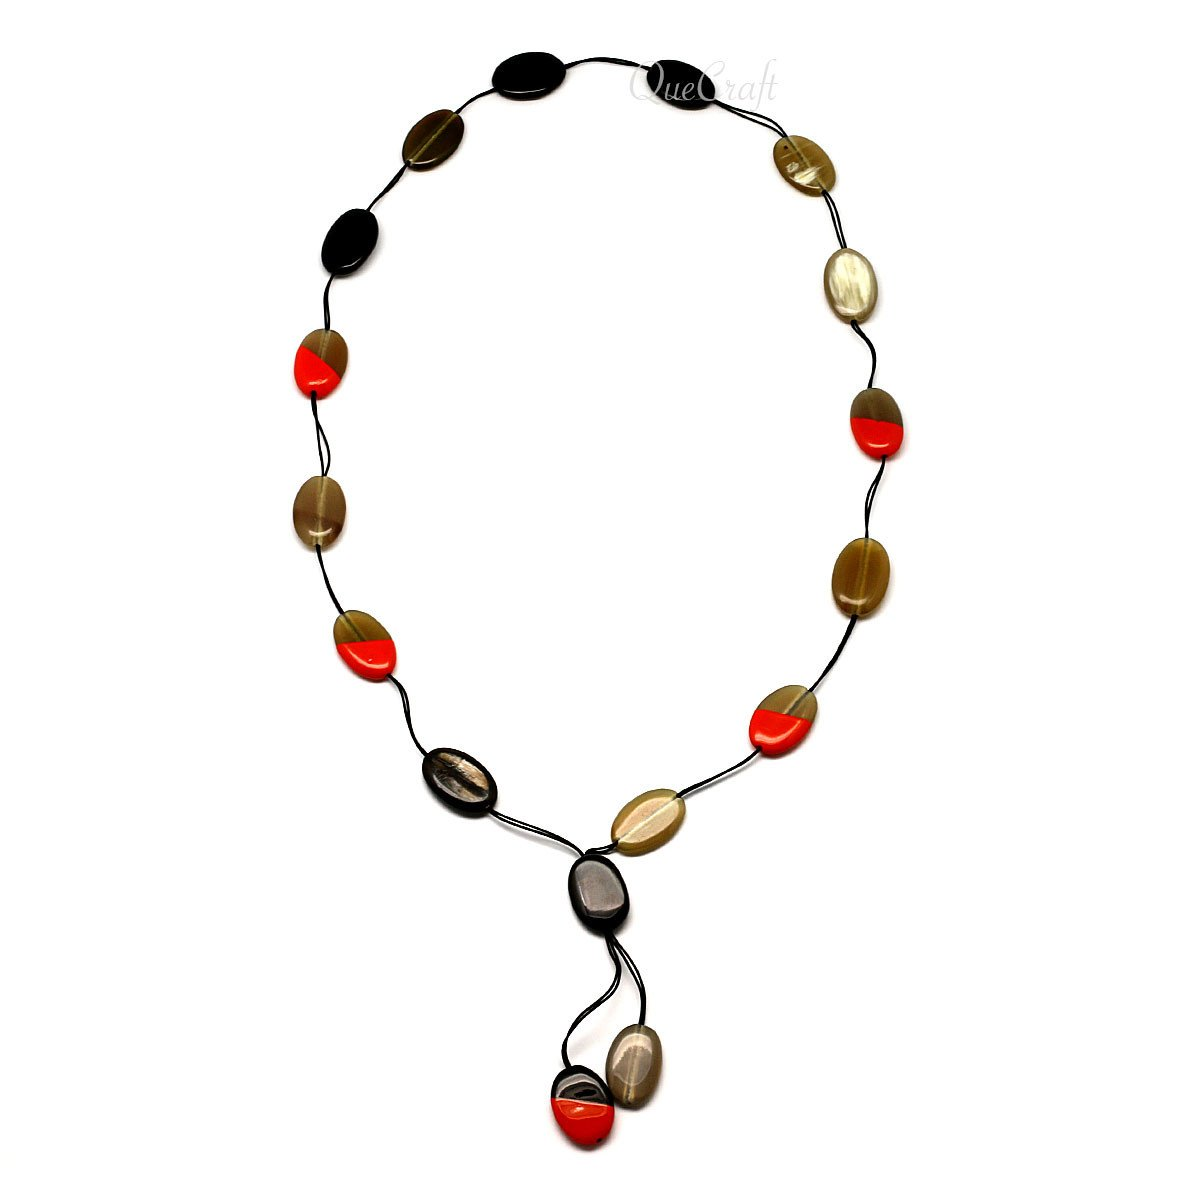 Horn & Lacquer Beaded Necklace #4413 - HORN.JEWELRY by QueCraft